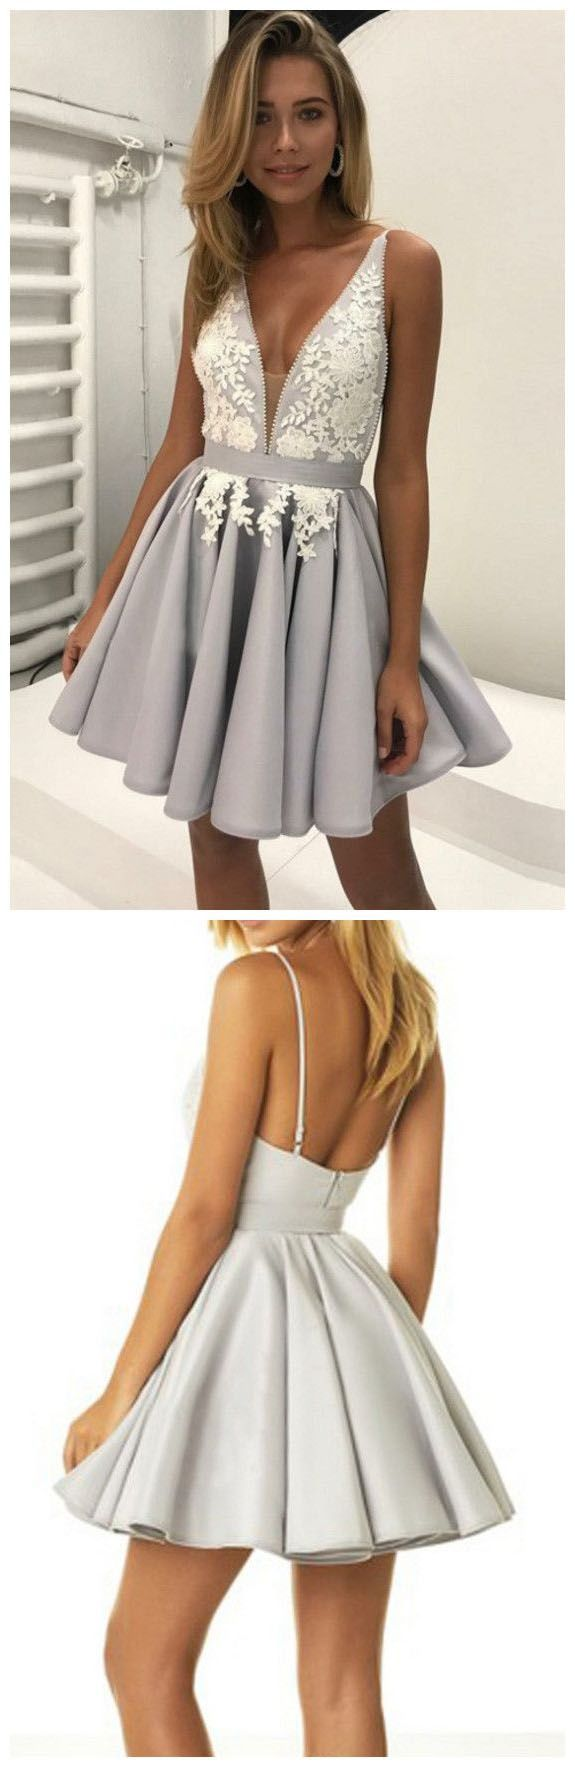 Hot sale fancy prom dresses vneck grey homecoming dreses short